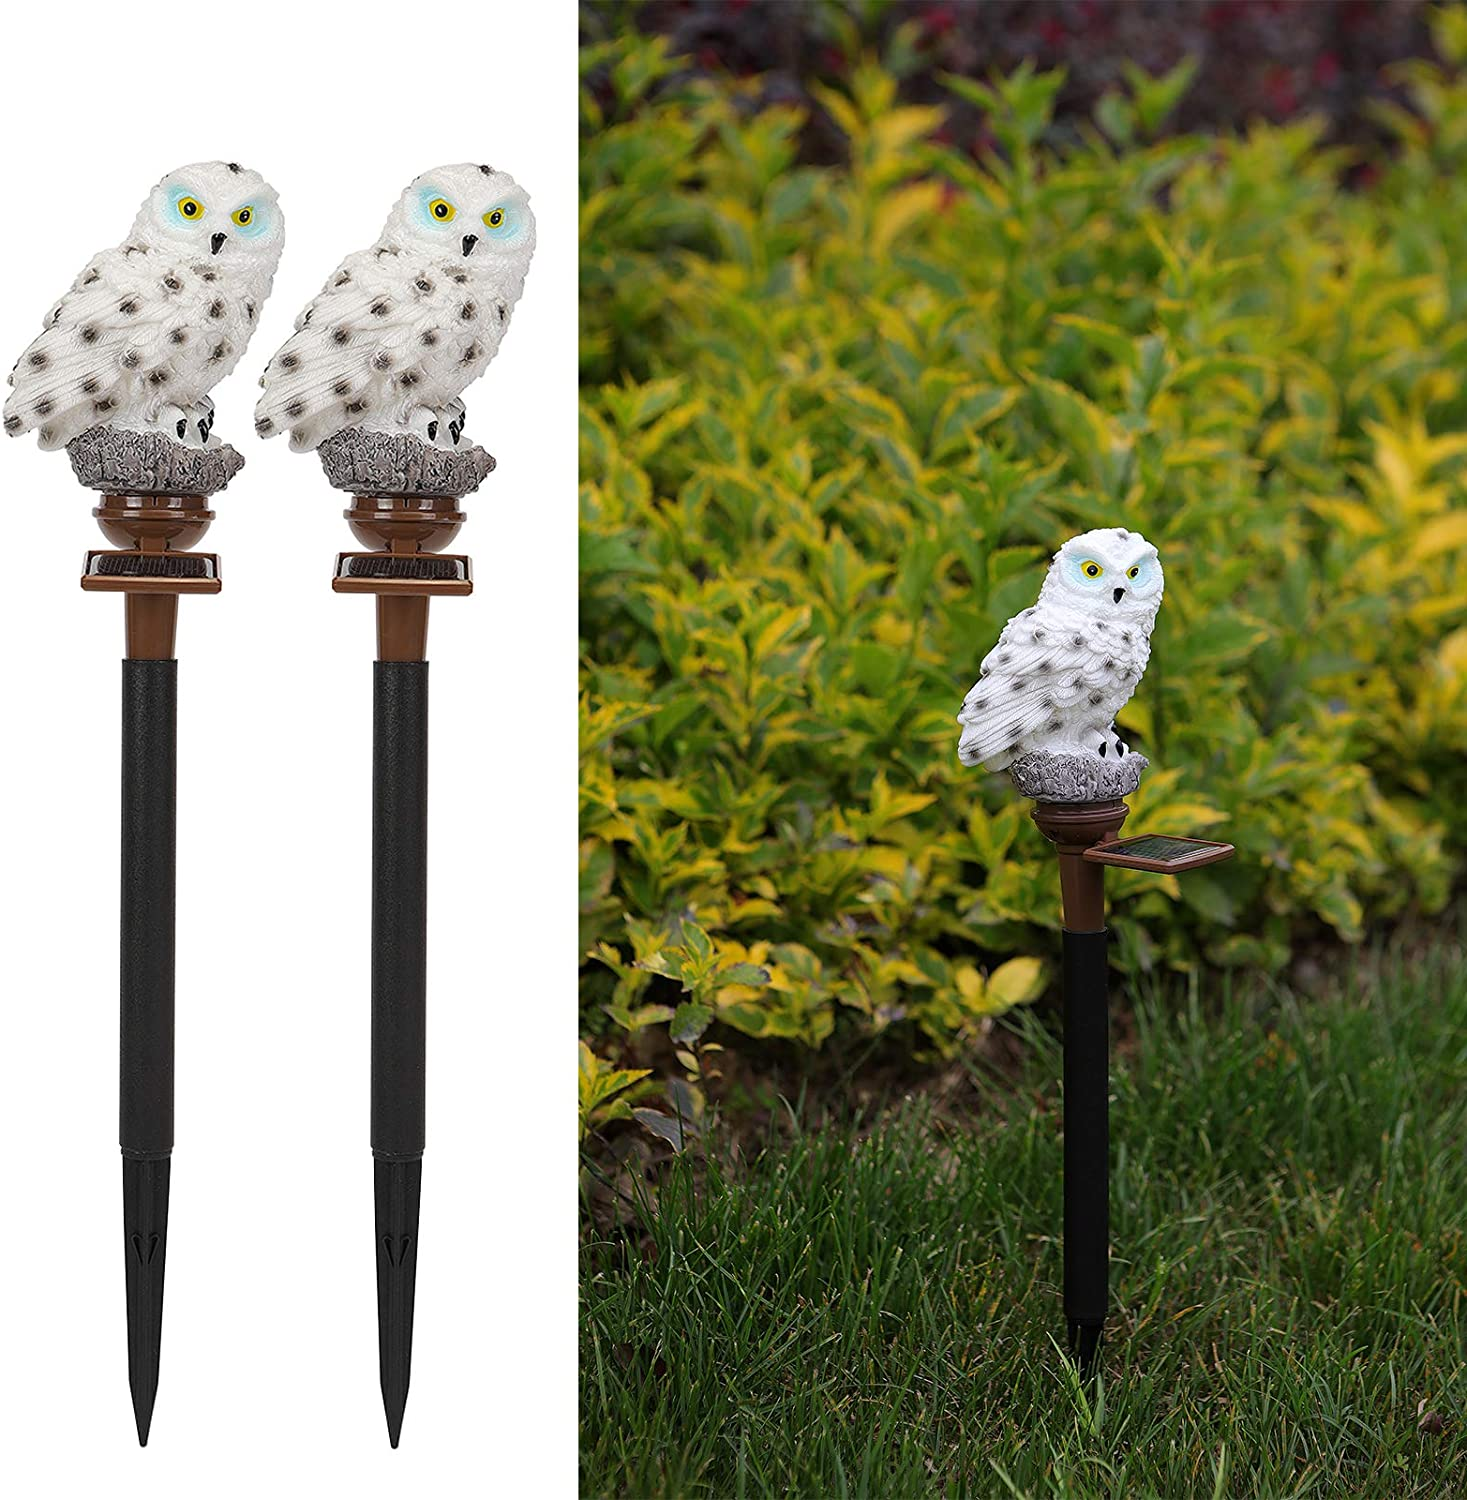 2 Pack Ostritec Garden Solar Lights Outdoor , Owl Solar Lights with Stake for Garden Lawn Pathway Walkway Yard Decorations(Warm White)